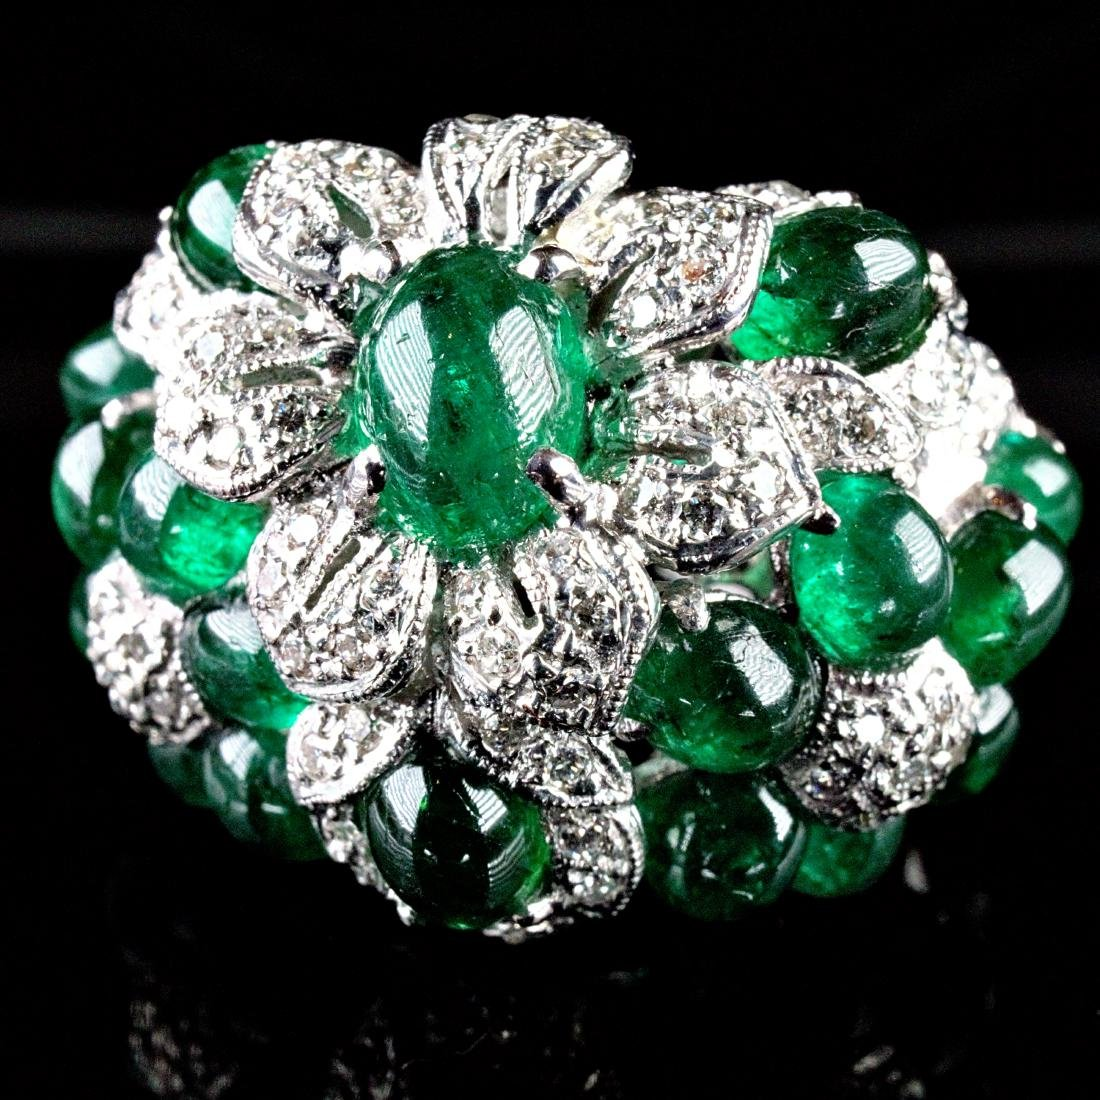 Cabochon Emerald and Diamond Pt Ring Marked Cartier